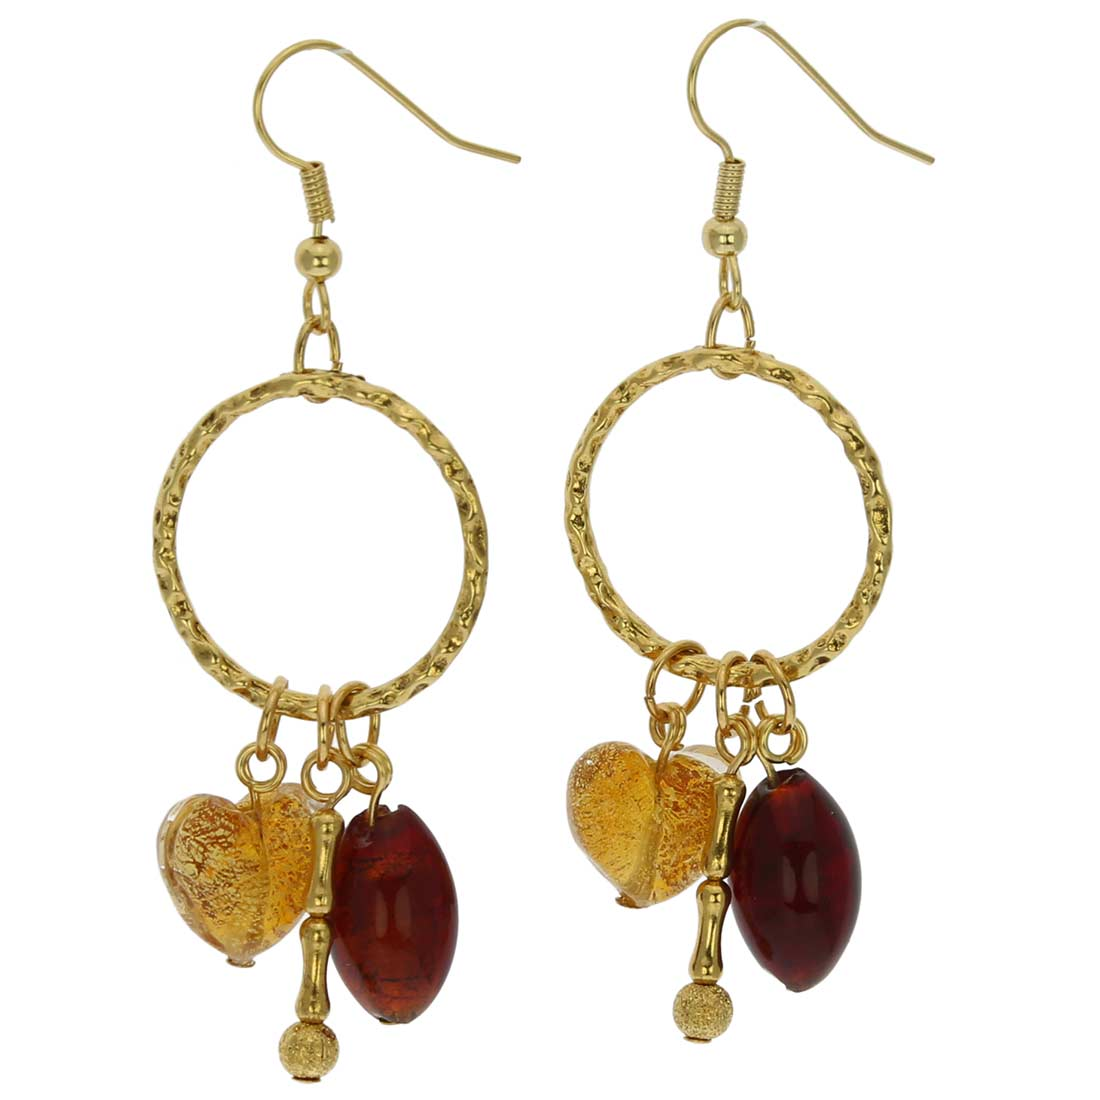 Il Sole Murano earrings